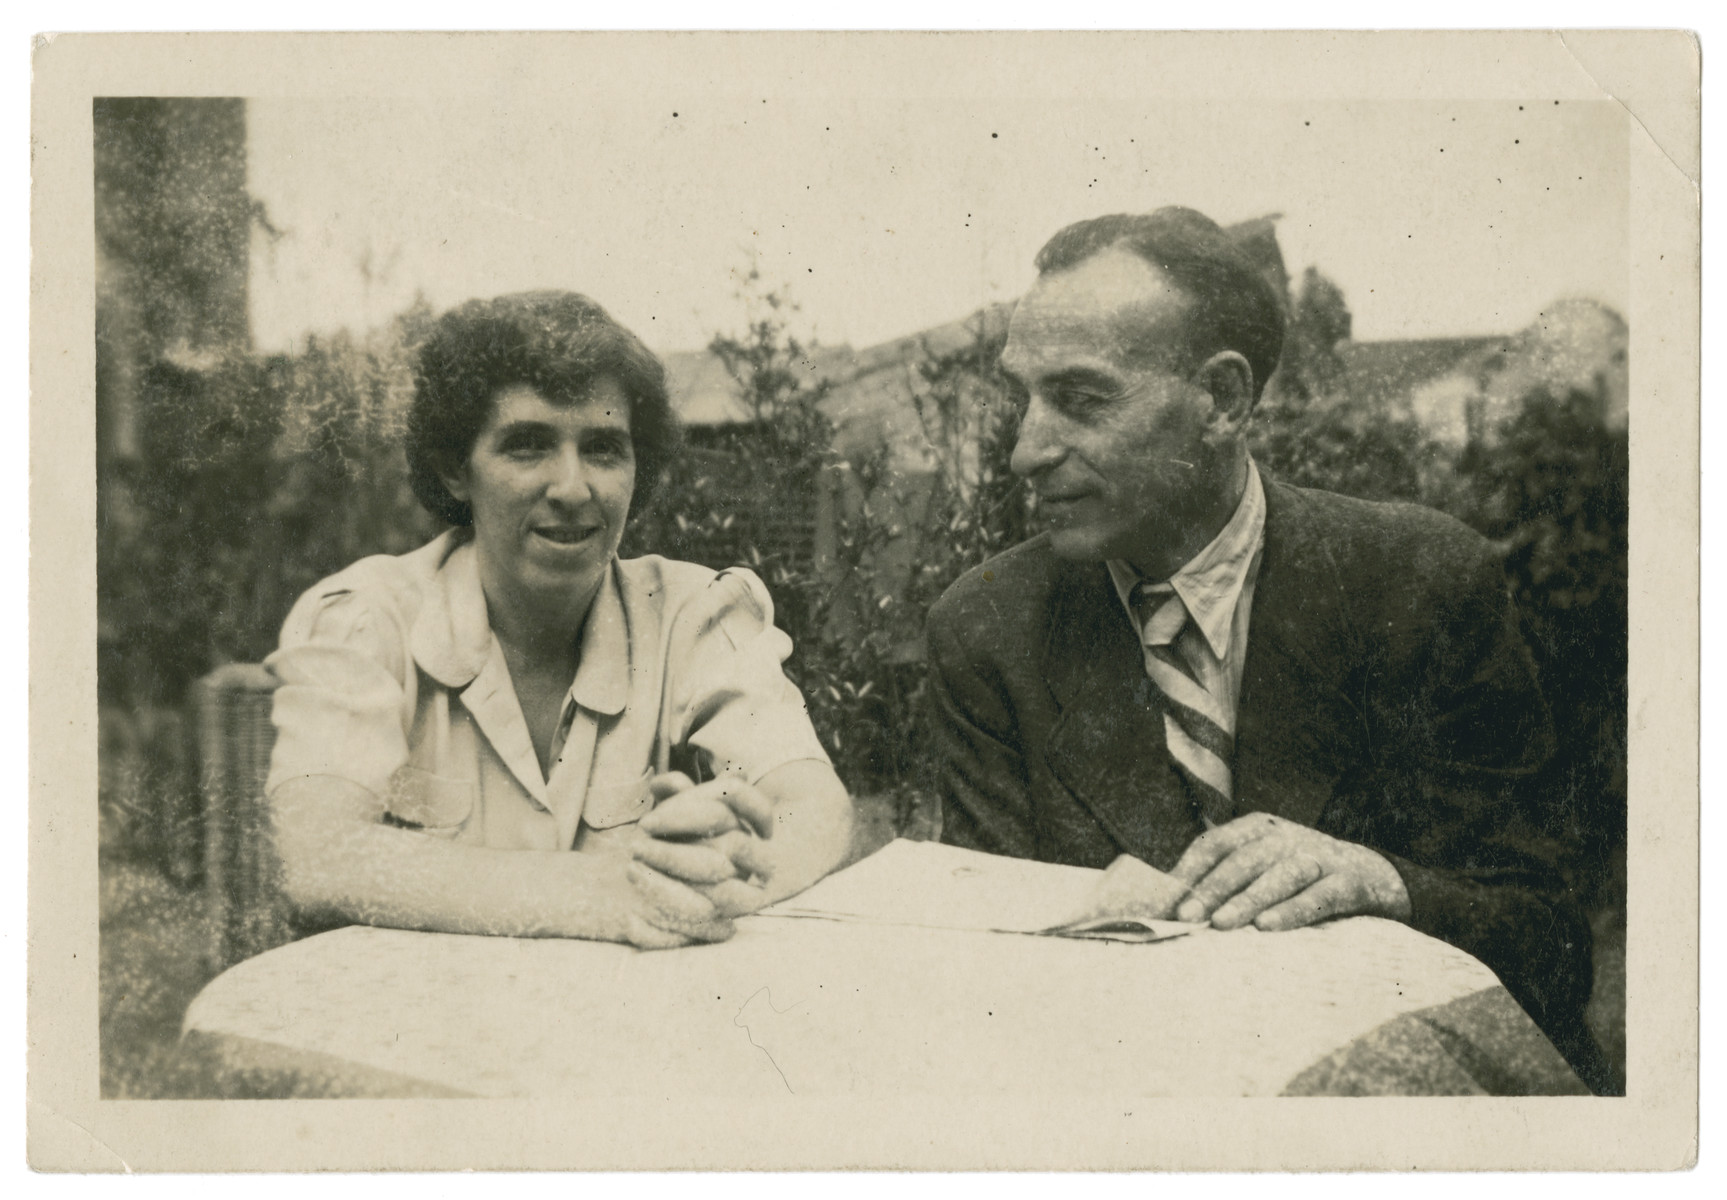 Jewish refugees Max and Erna (nee Weissblum) Pikarski (aunt and uncle of the donor) sit at an outside table in Shanghai.  They formerly lived in Neurode, Schlesien.  After the war both came to Oakland, California with many members of their family who had fled Germany to Shanghai.